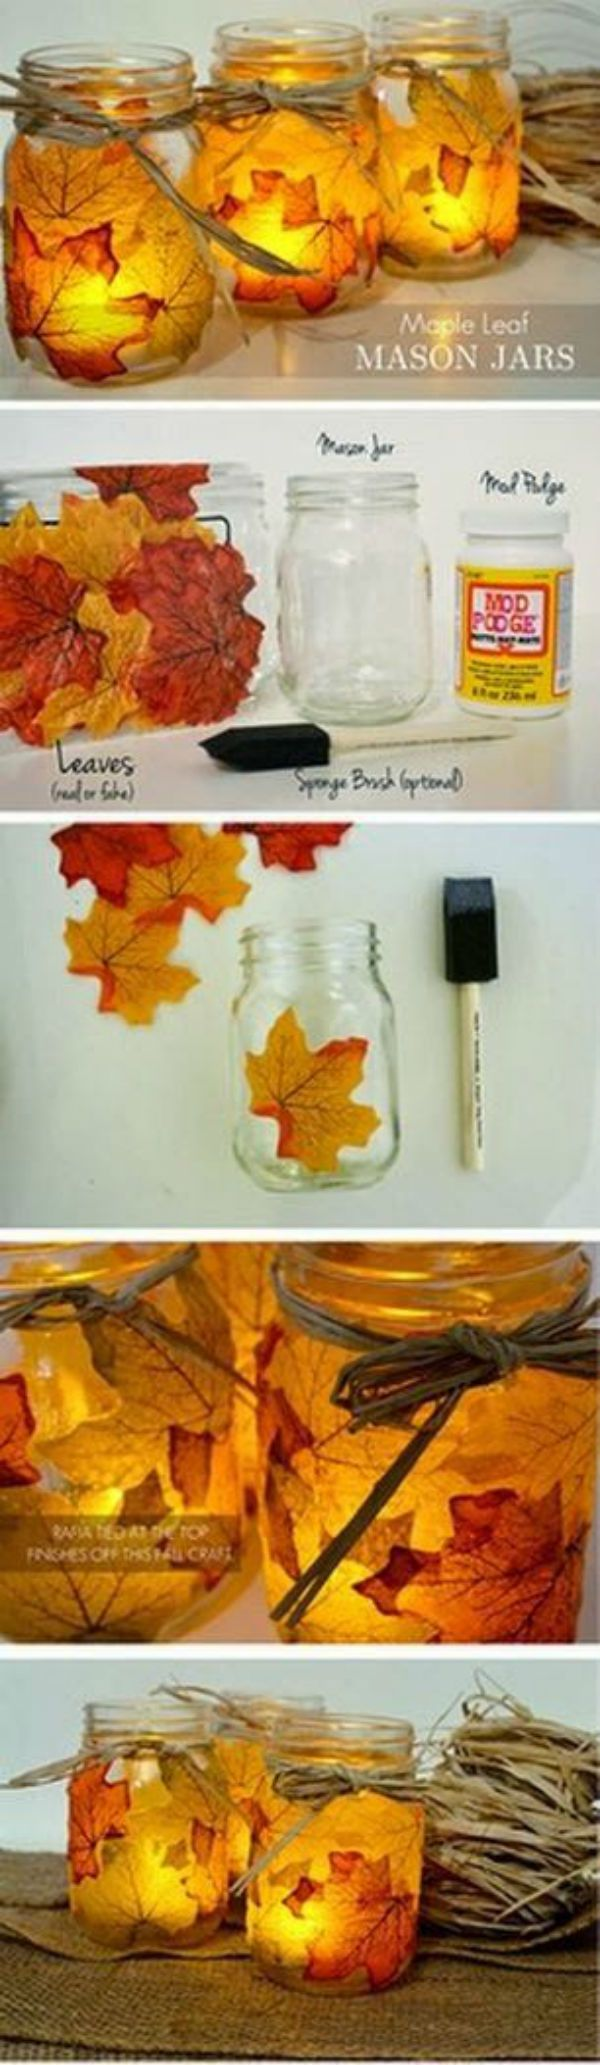 Ideas for holiday decorations. From Leaf Mason Jars to Cinnamon scented pinecones -you can do it yourself!